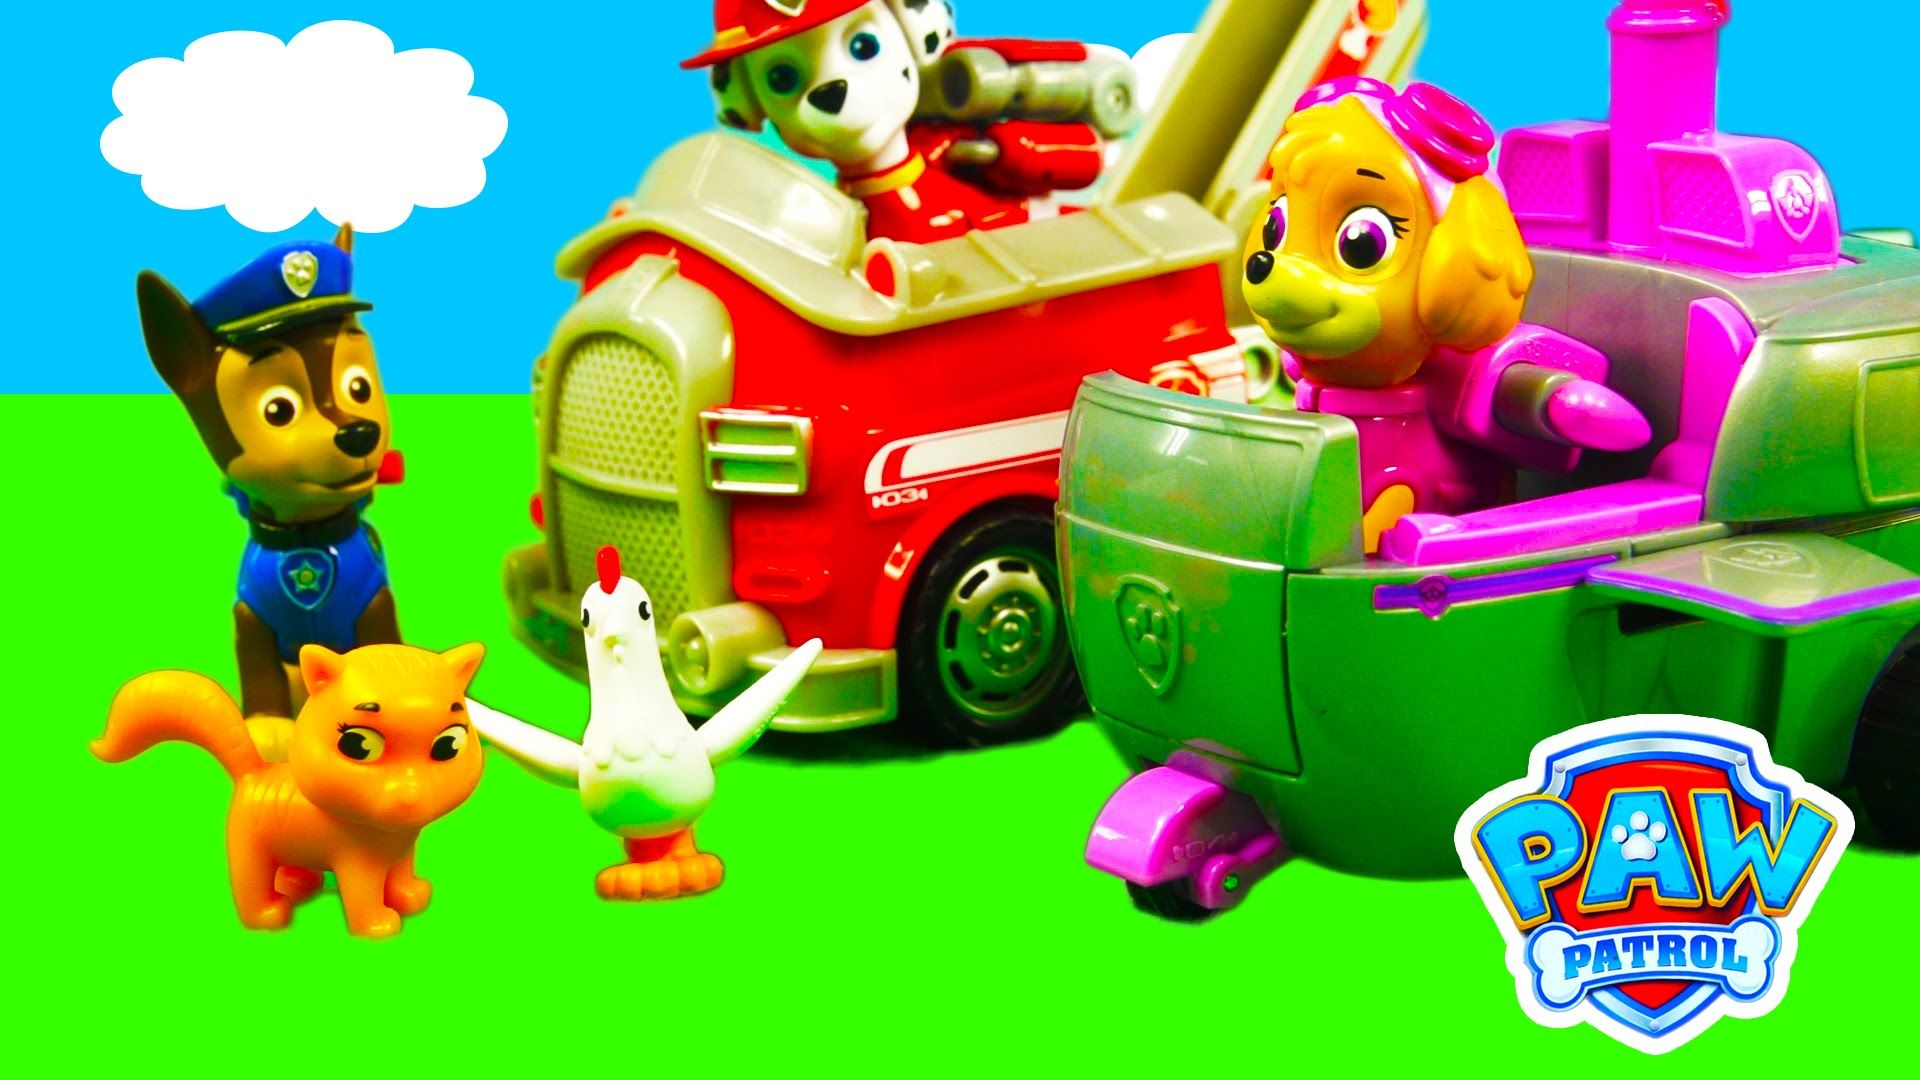 PAW PATROL PUP FU KUNG FU FIGHTS RUBBLE VS WALLY THE